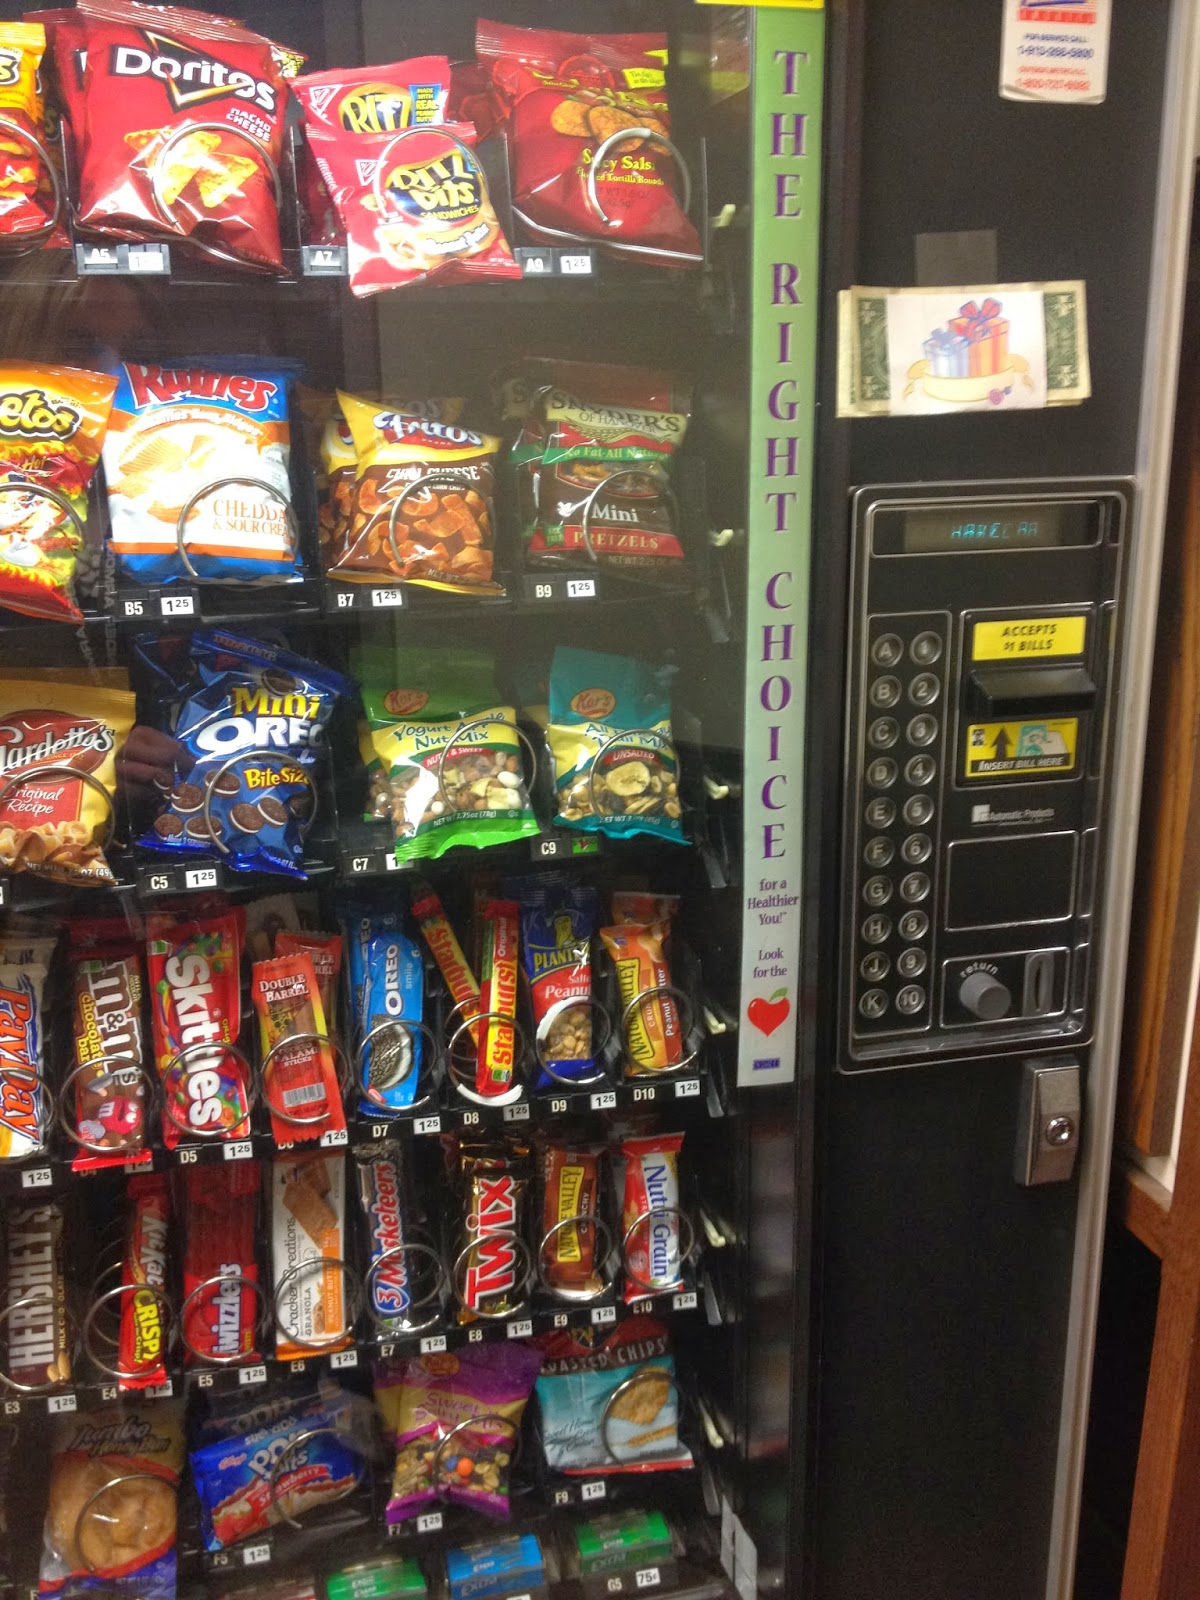 taped dollar vending machine